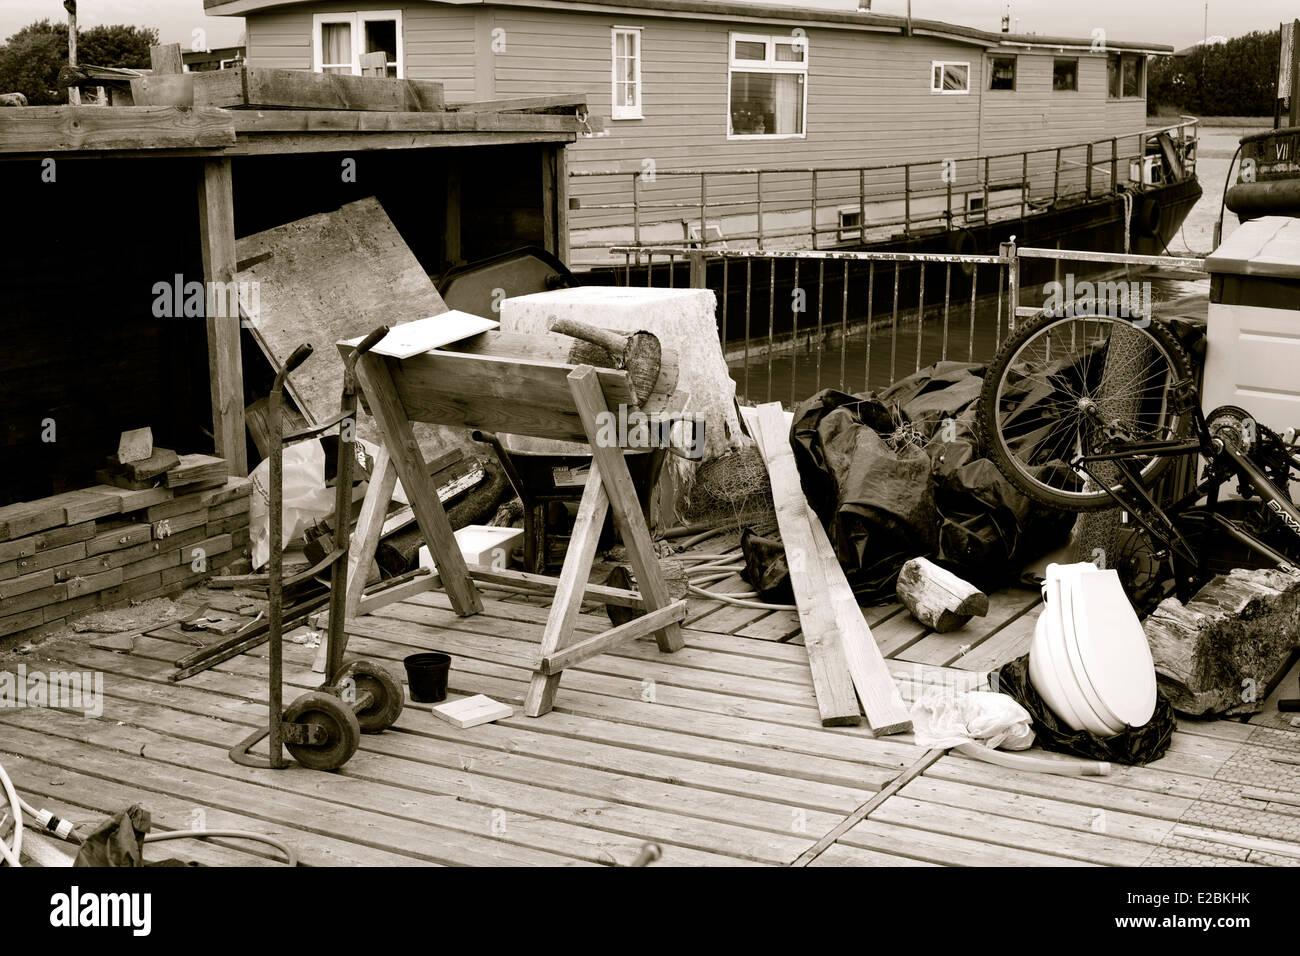 Junk on a houseboat, Black & White - Stock Image